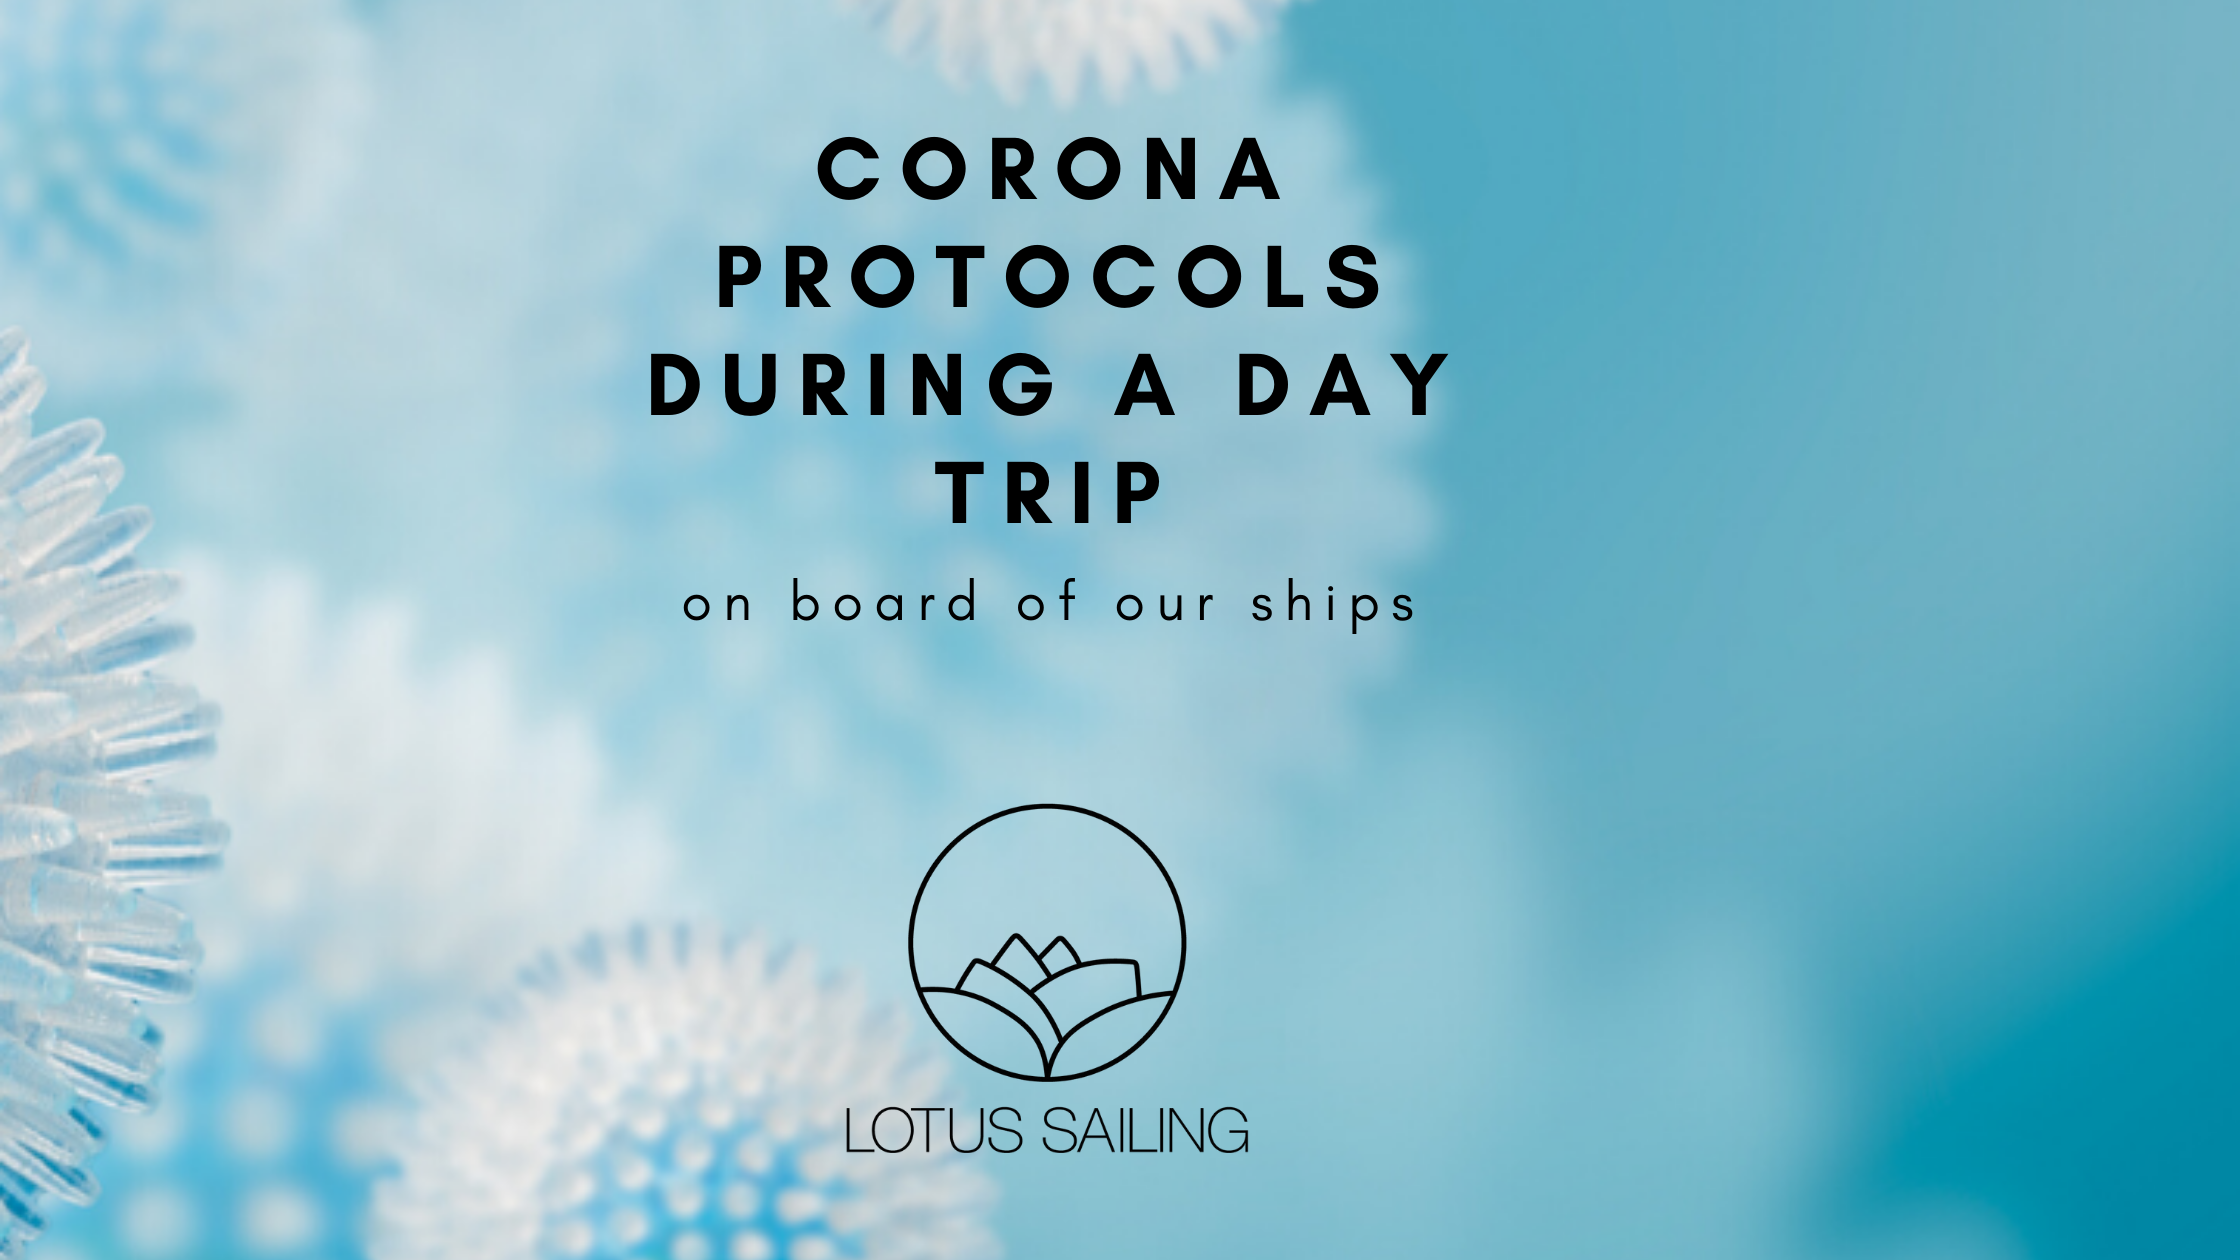 Corona protocols during a daytrip